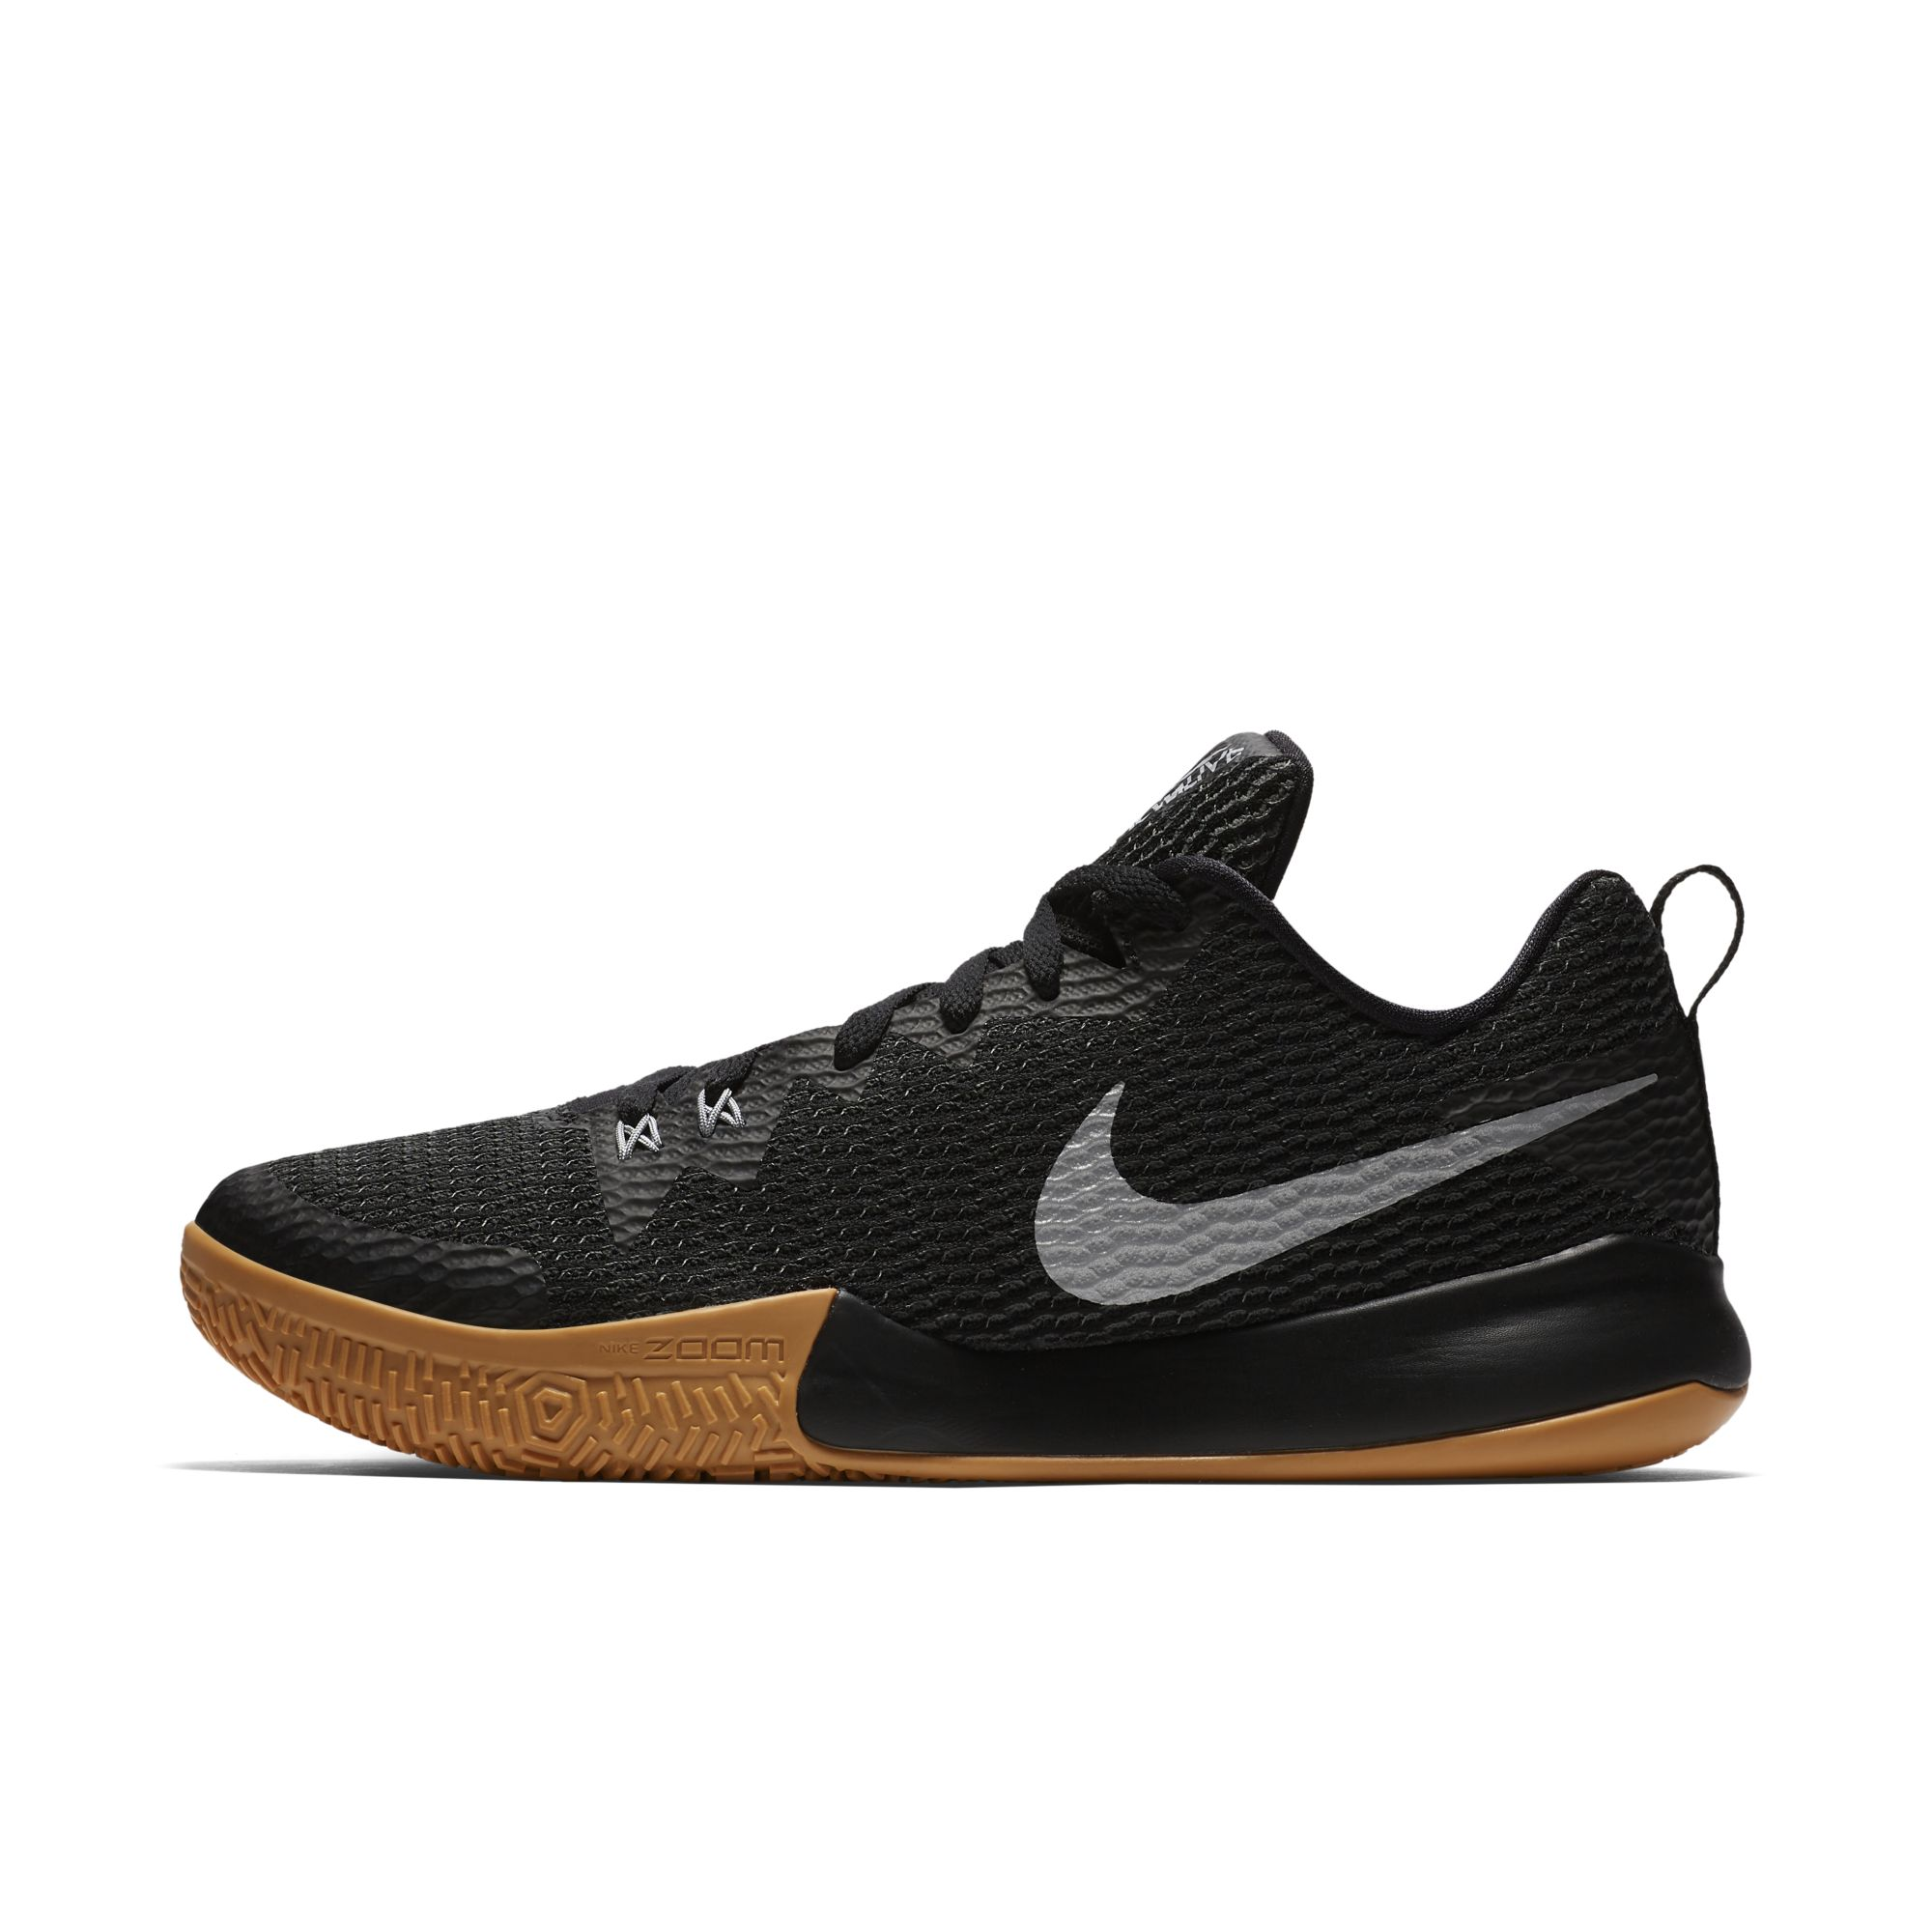 Nike Zoom Live 2 is Nearly Identical